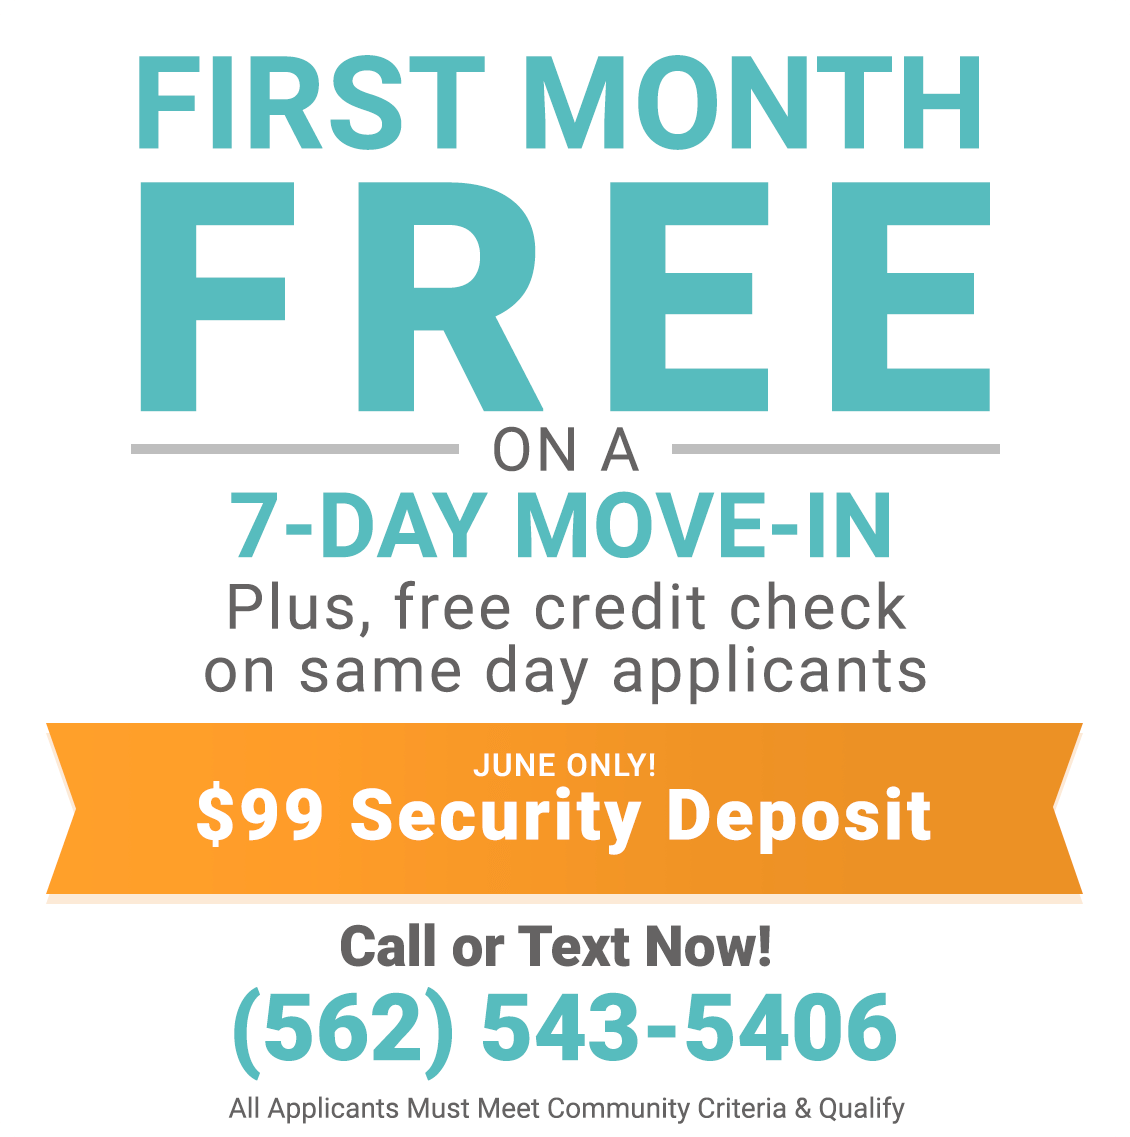 First Month Free on a 7-Day Move-In Specials and free credit check on same-day applicants